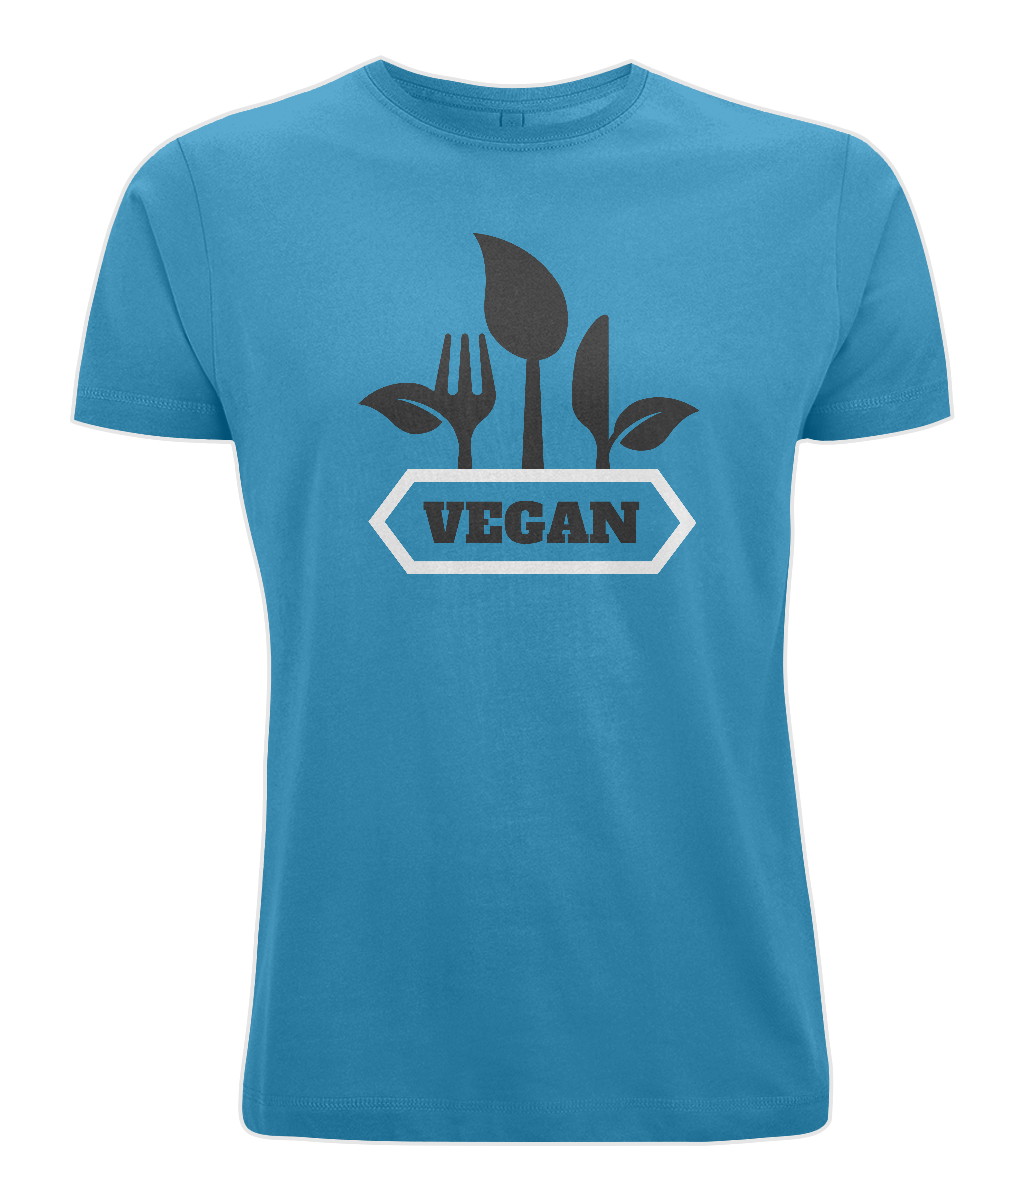 Vegan Fork & Knives Mens Vegan T-Shirt 0059 - Clothing - EchoWears T-Shirts & Accessories